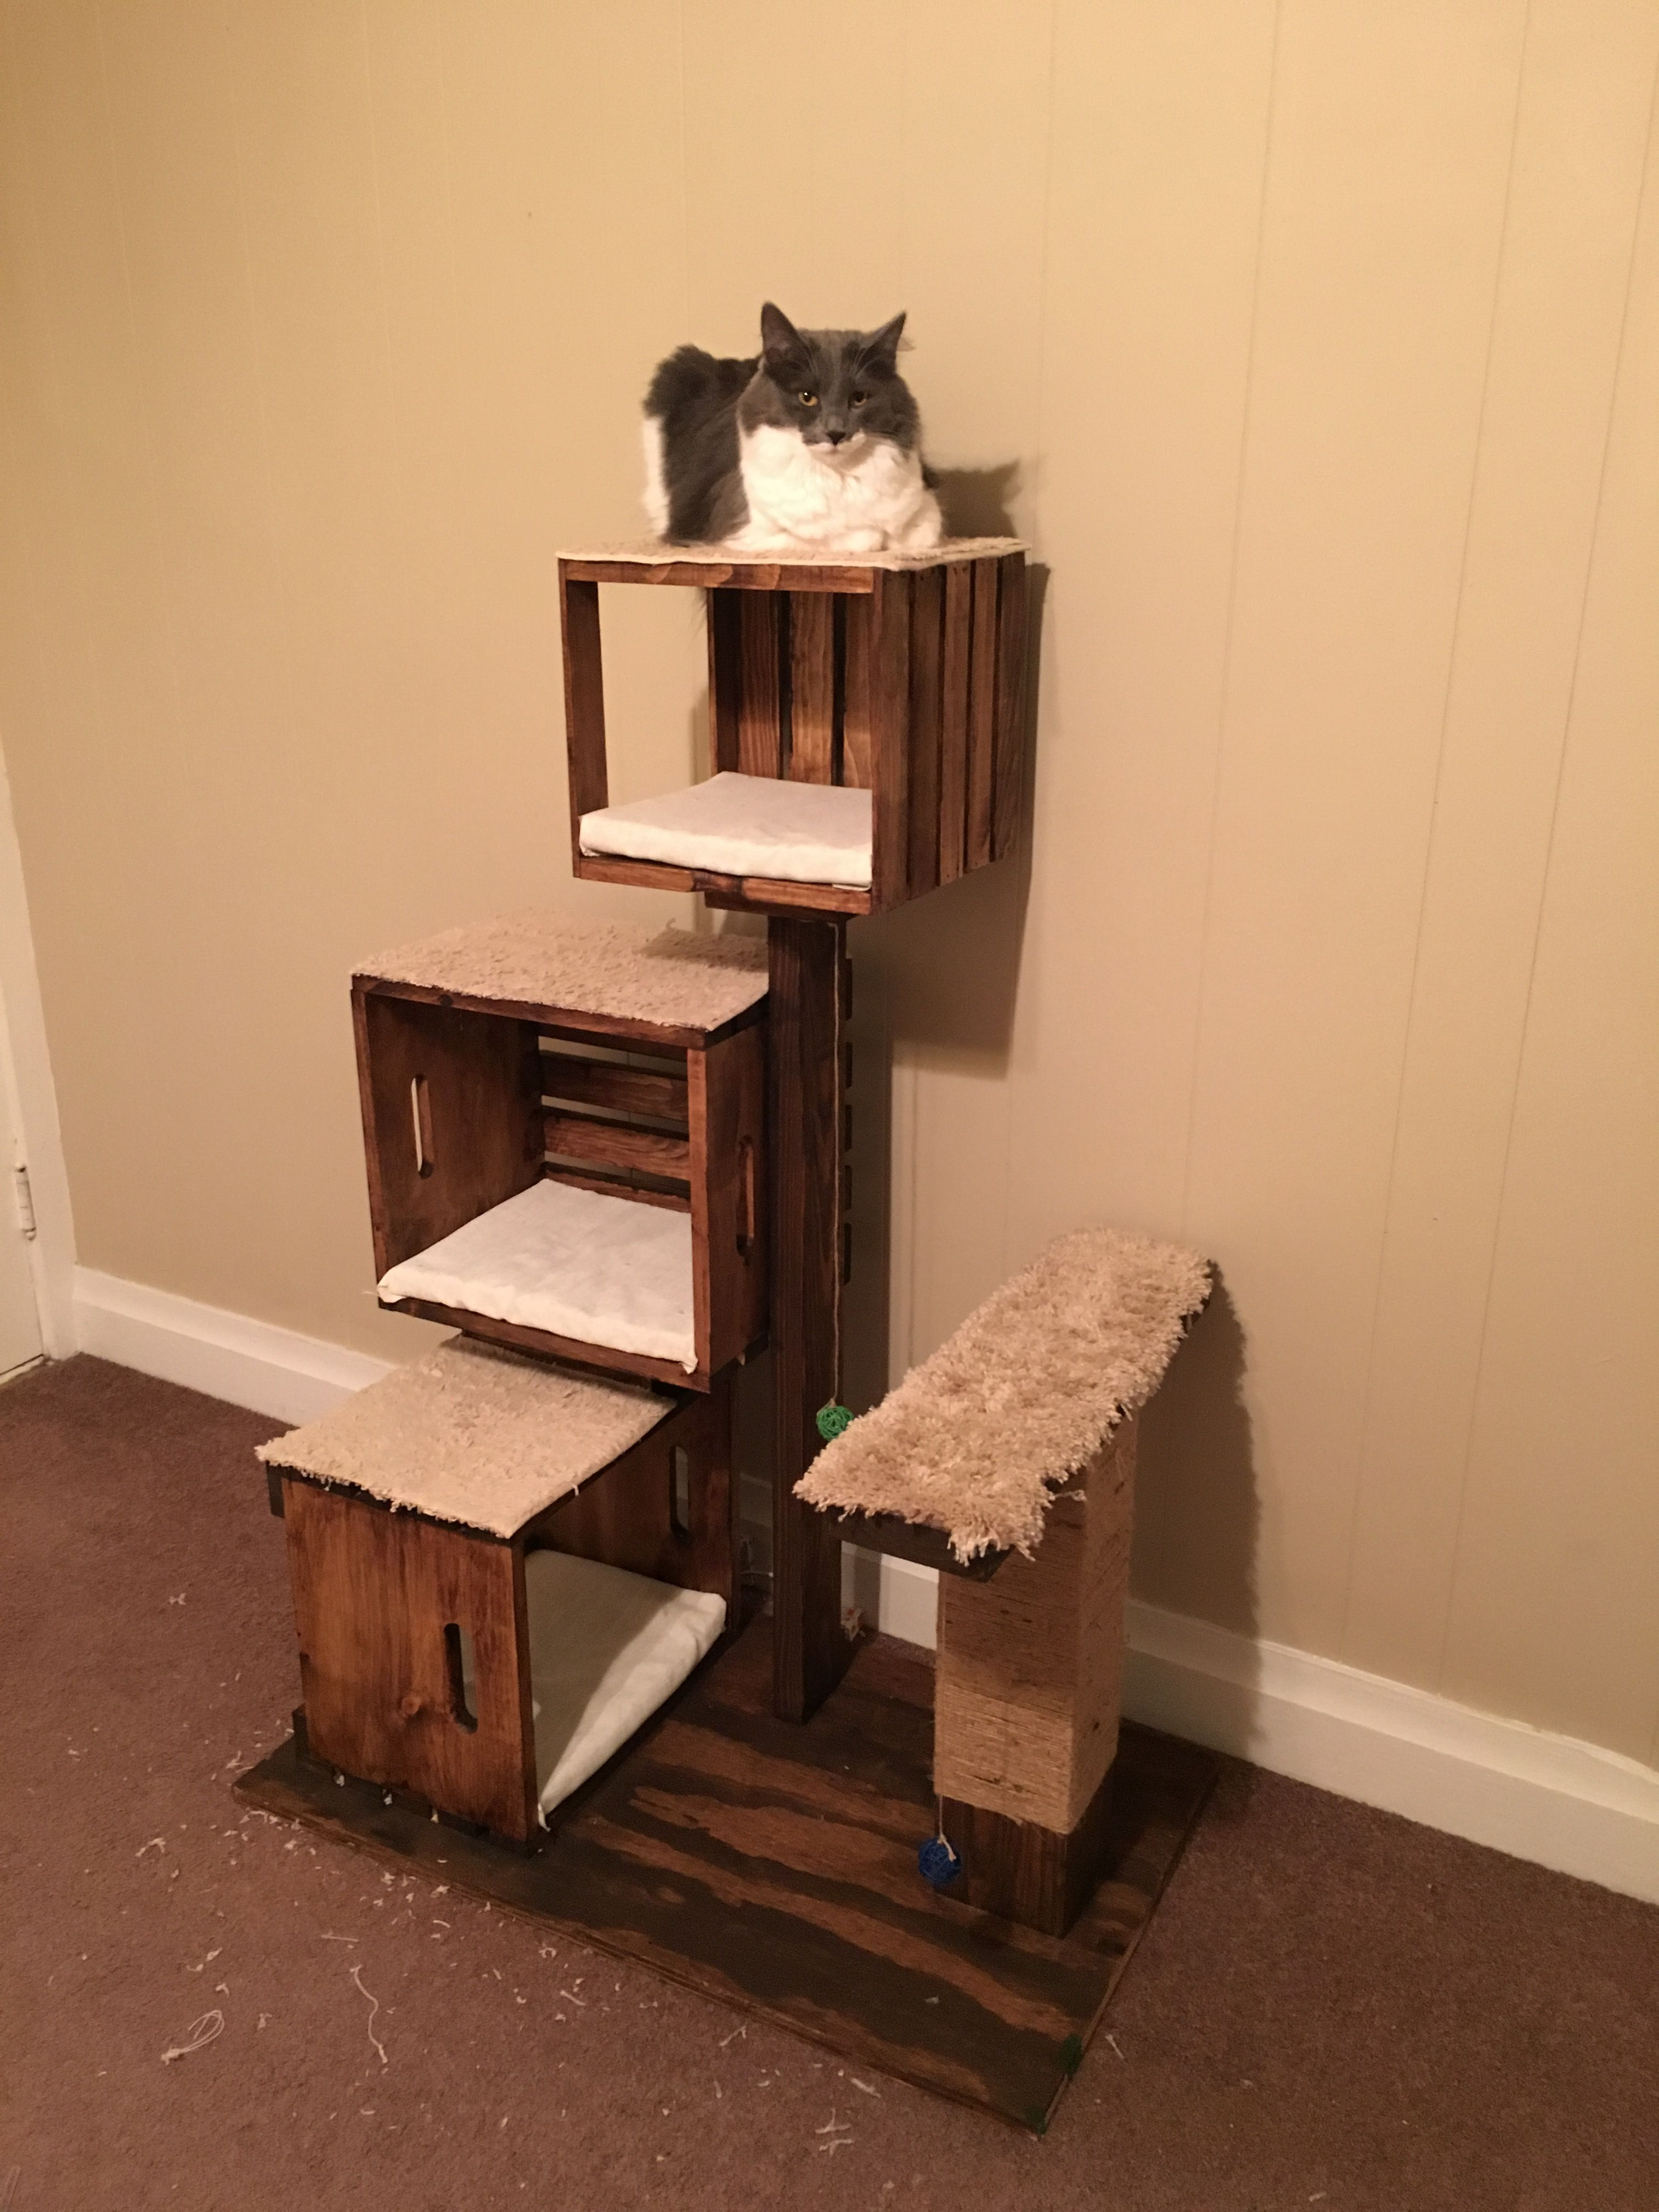 curious picture furniture room domestic and cat animals head cats pet fauna kitchen free kittens